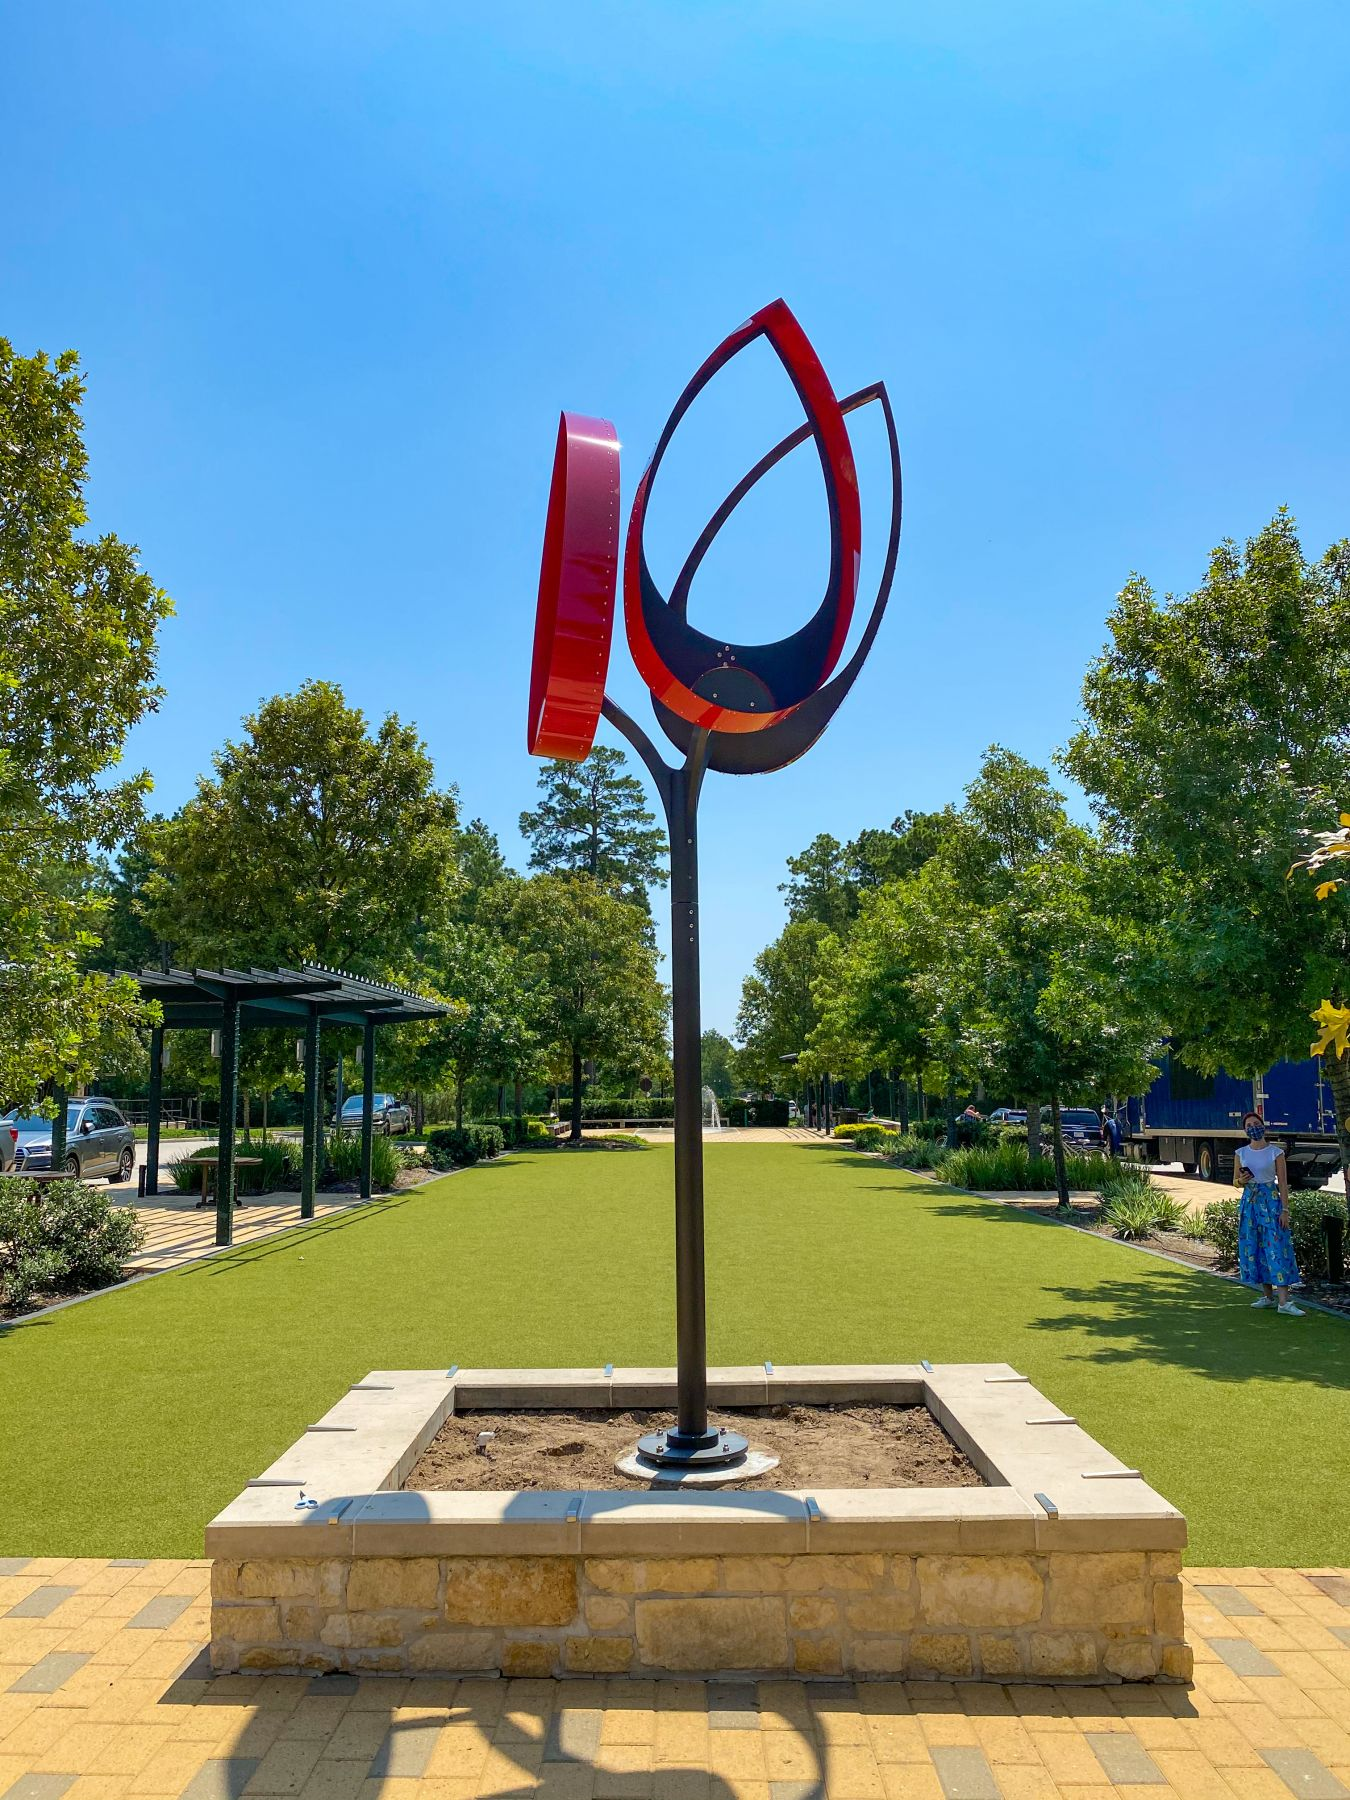 Pedro S. de Movellán, Ibis, 2020. Creekside Park Village Green, The Woodlands, Texas.